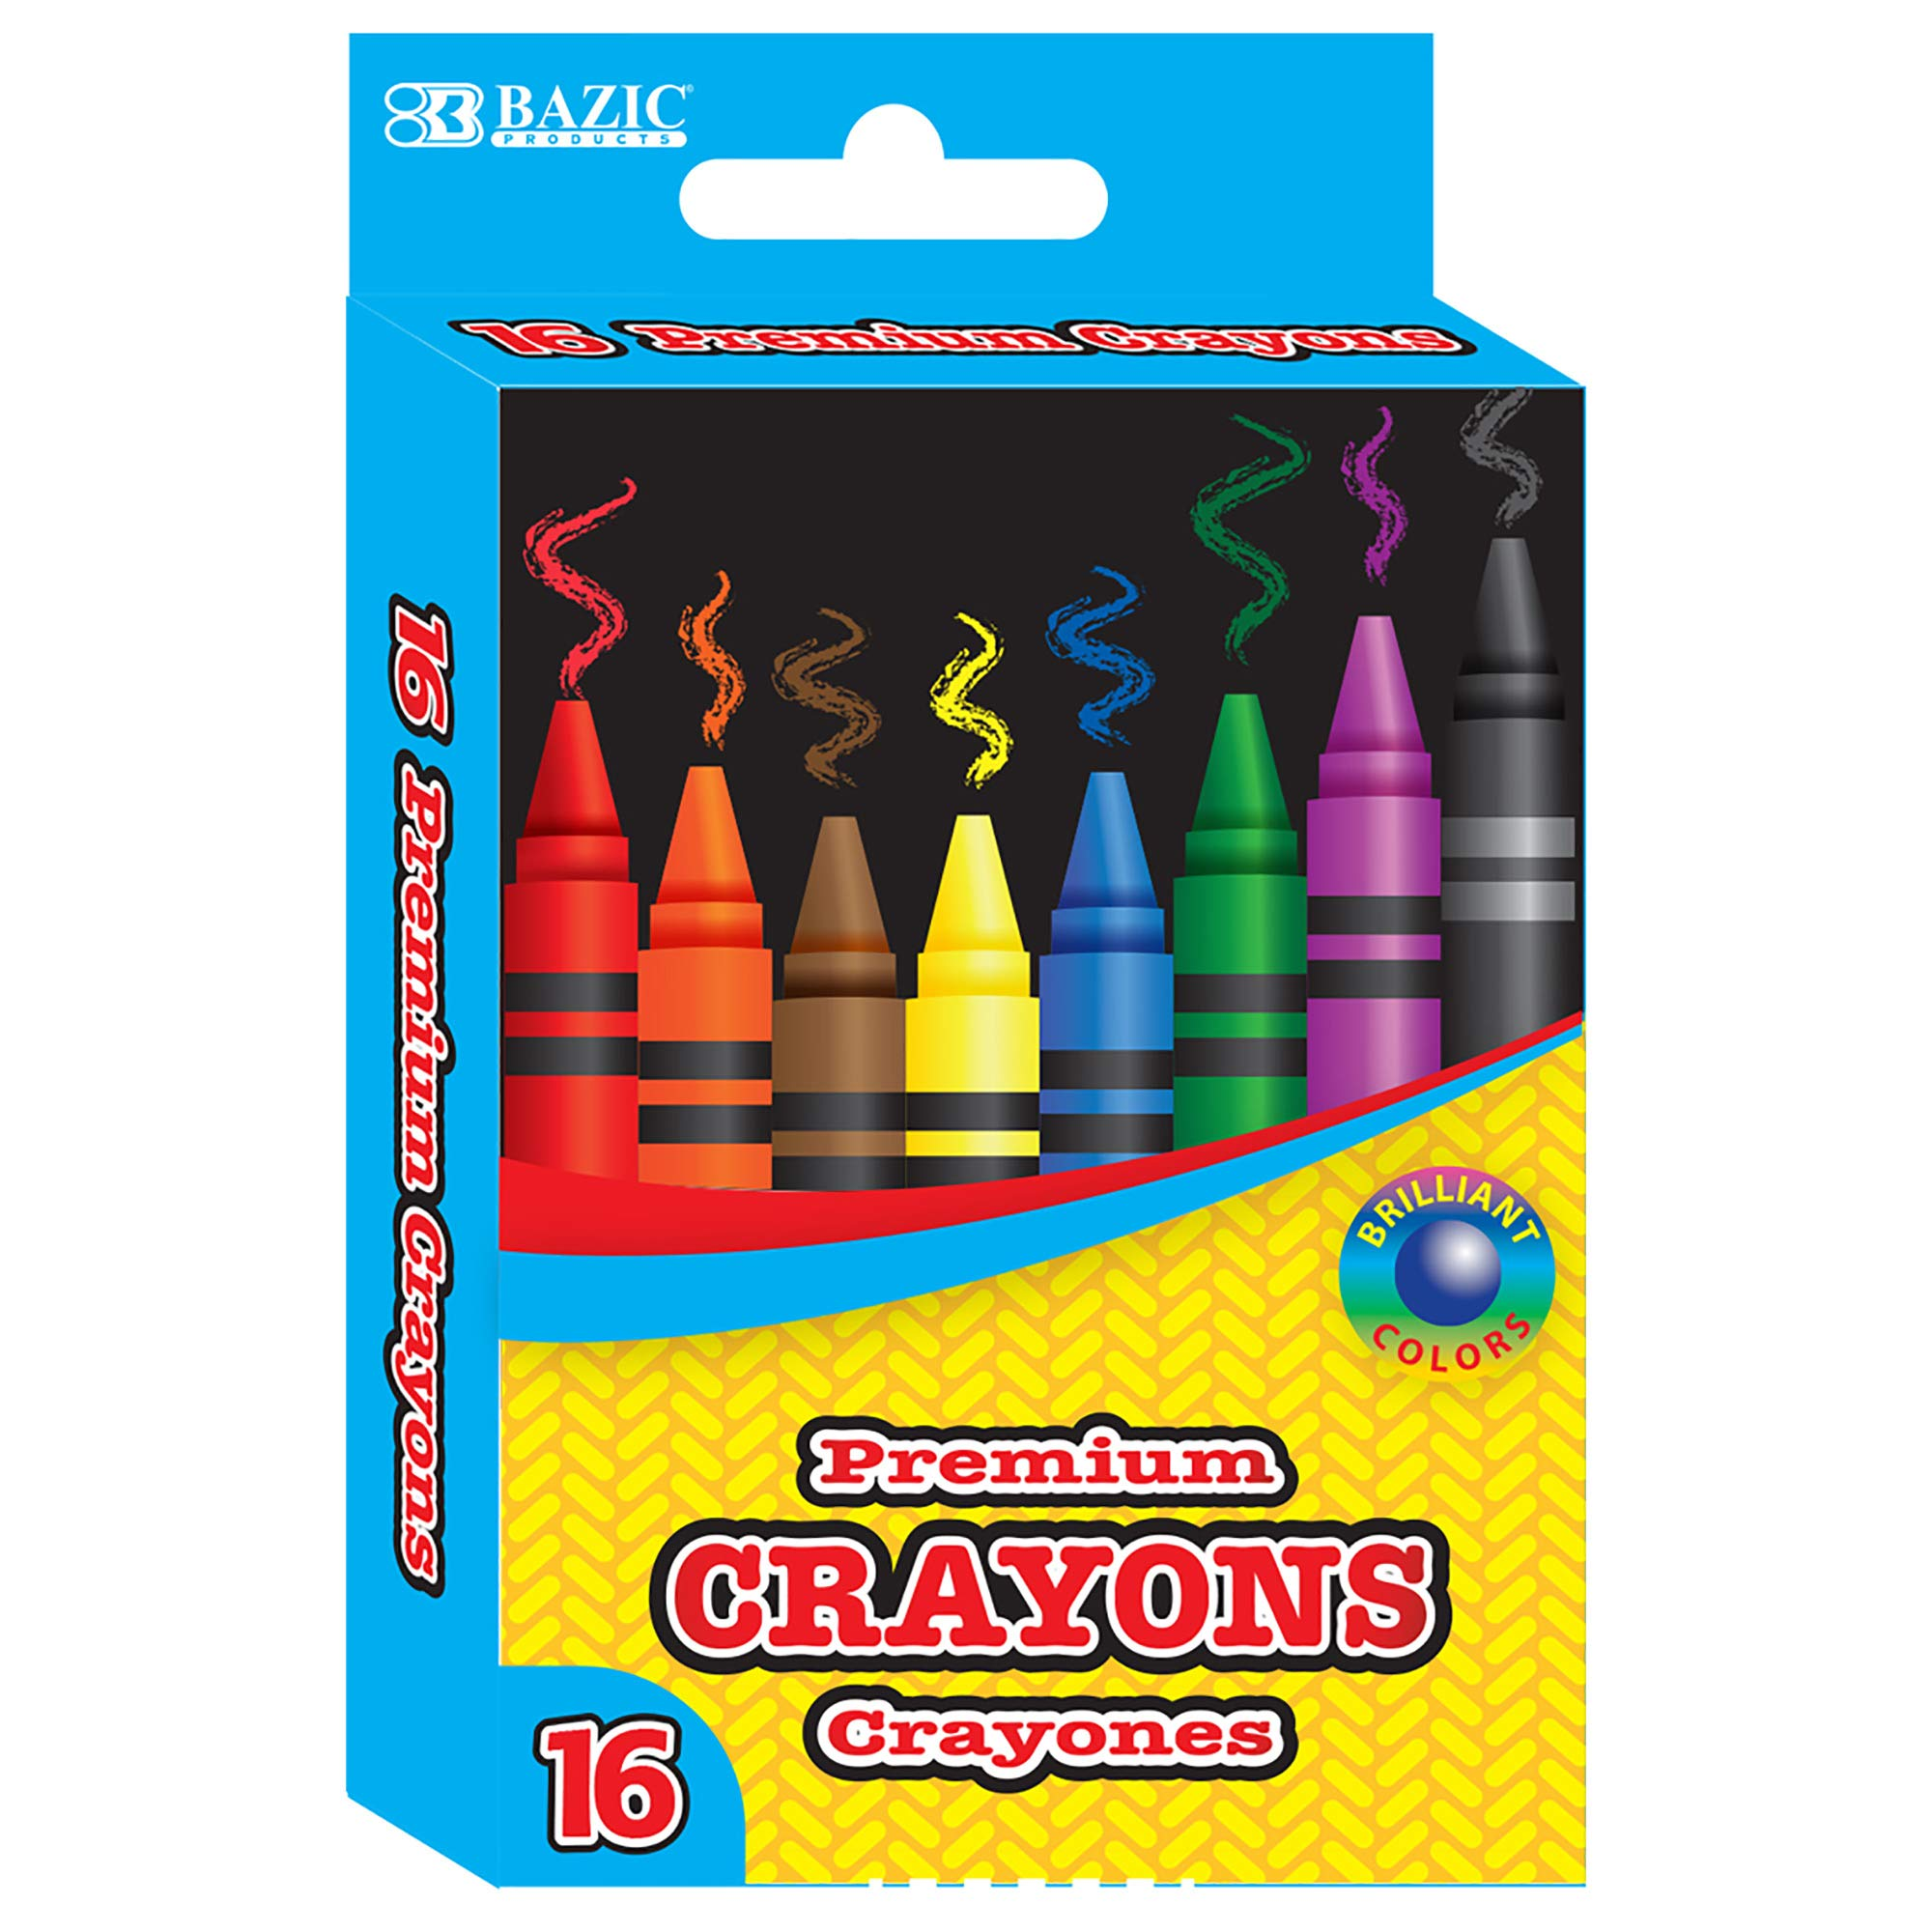 BAZIC 16 Color Premium Crayons, Assorted Washable Coloring Set, School Art Gift for Kids Teens Age 3+ (Box of 24)